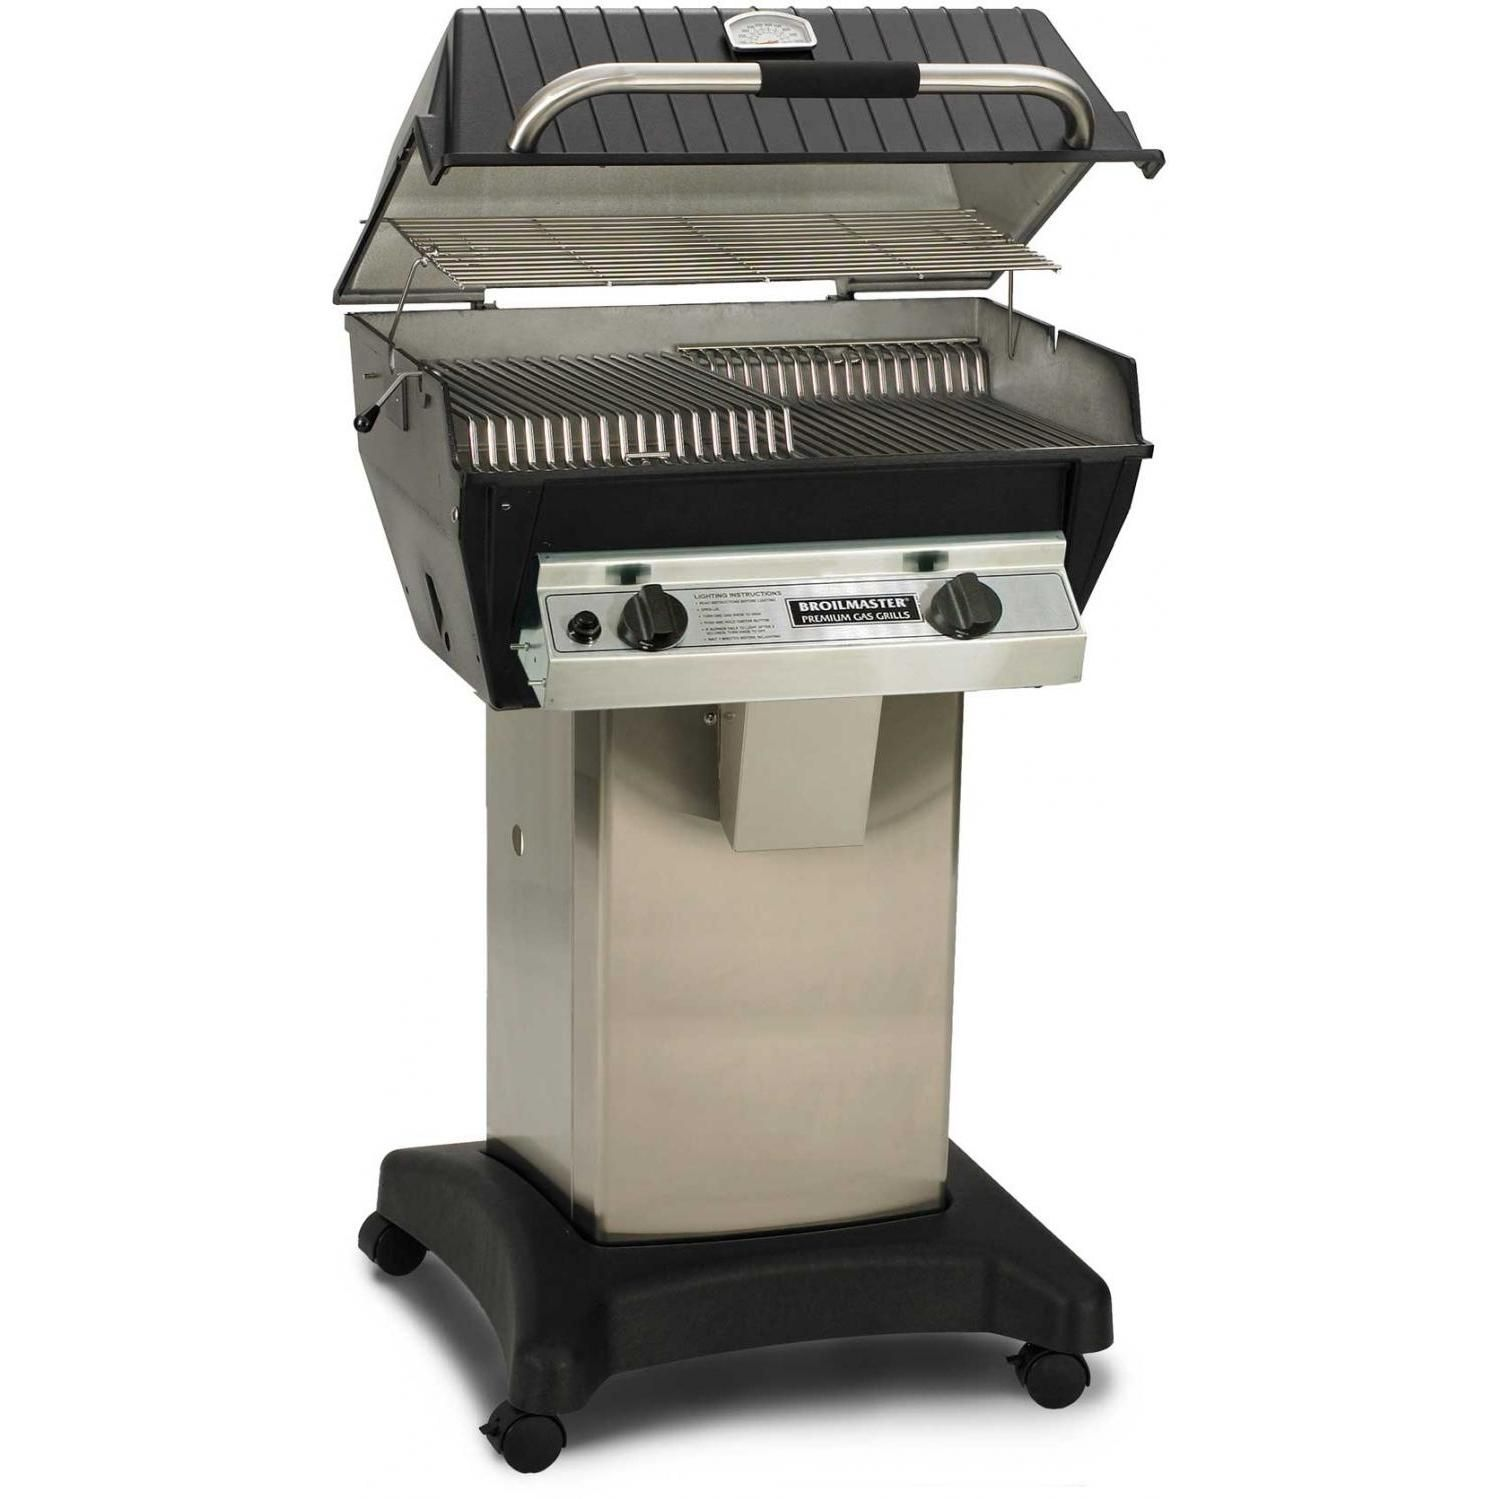 Broilmaster R3bn Infrared Combination Natural Gas Grill On Stainless Steel Cart Propane Gas Grill Grilling Grill Sale